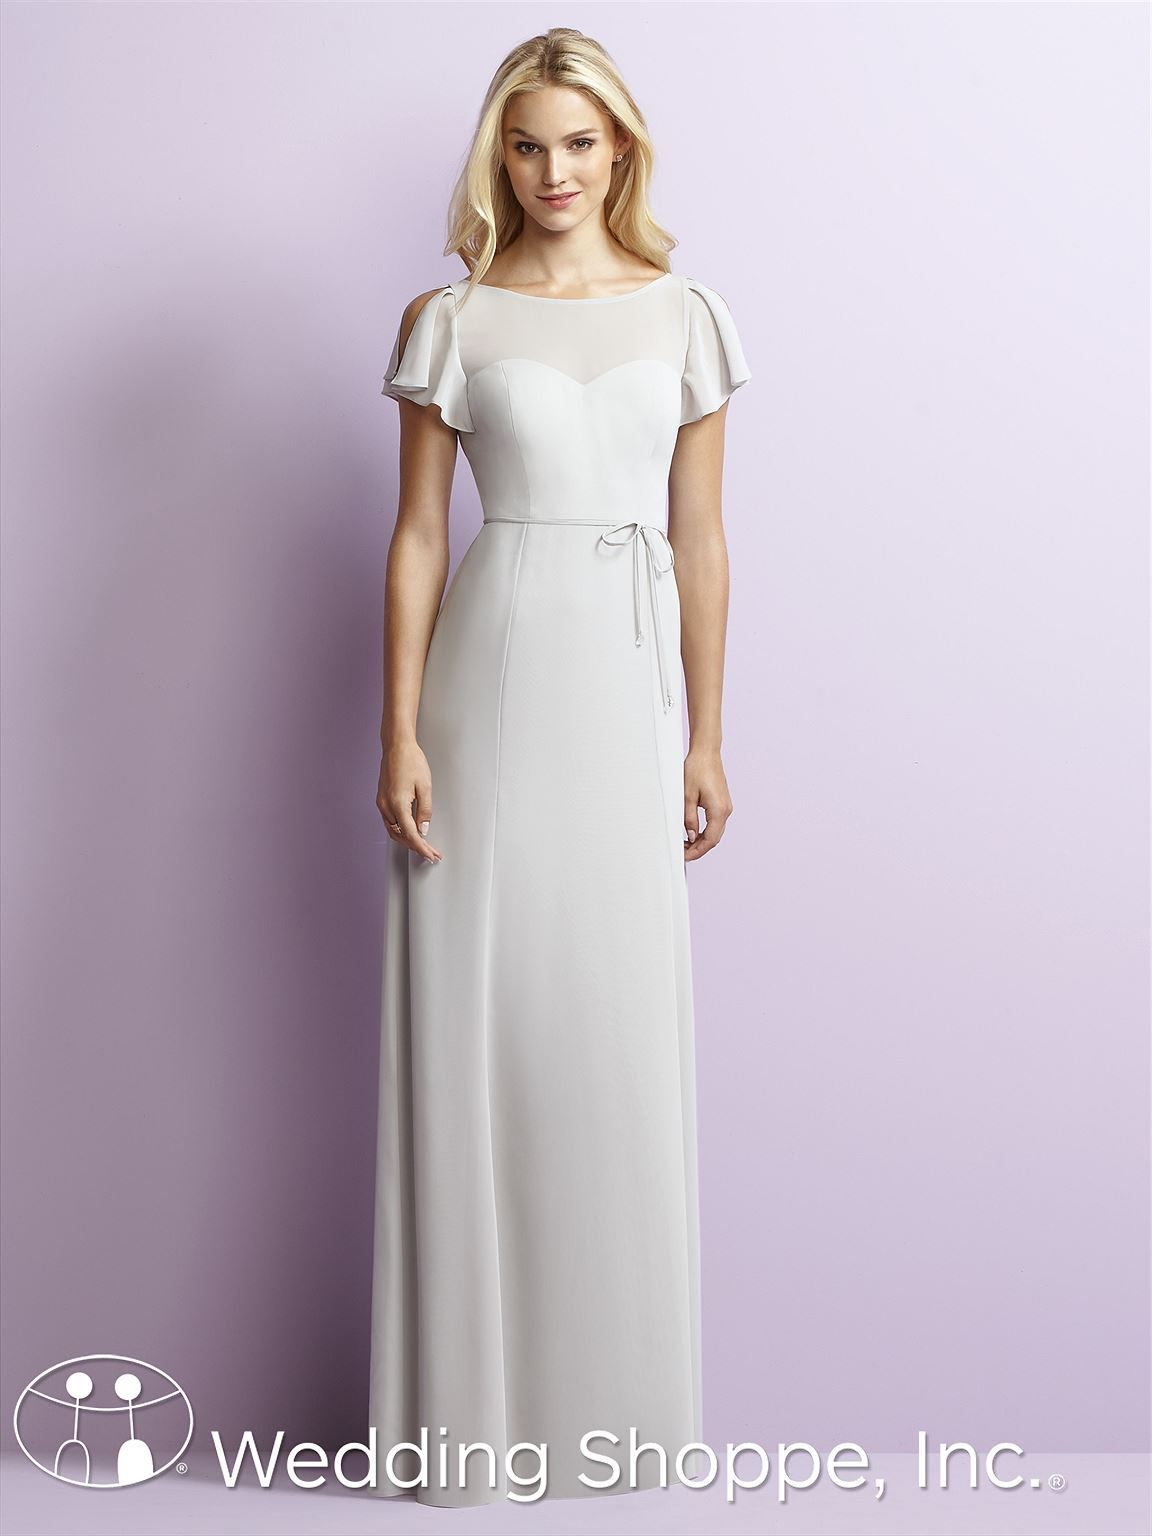 Jenny yoo by dessy bridesmaid dress jy518 long chiffon bridesmaid jenny yoo by dessy bridesmaid dress jy518 long chiffon bridesmaid dress bridesmaid dress with sleeves ombrellifo Gallery